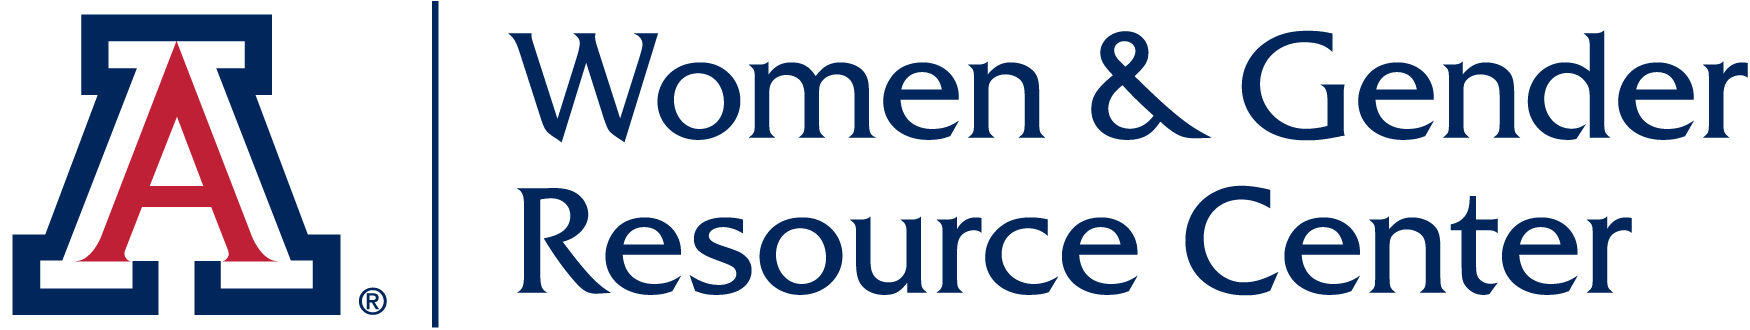 Women & Gender Resource Center | Home